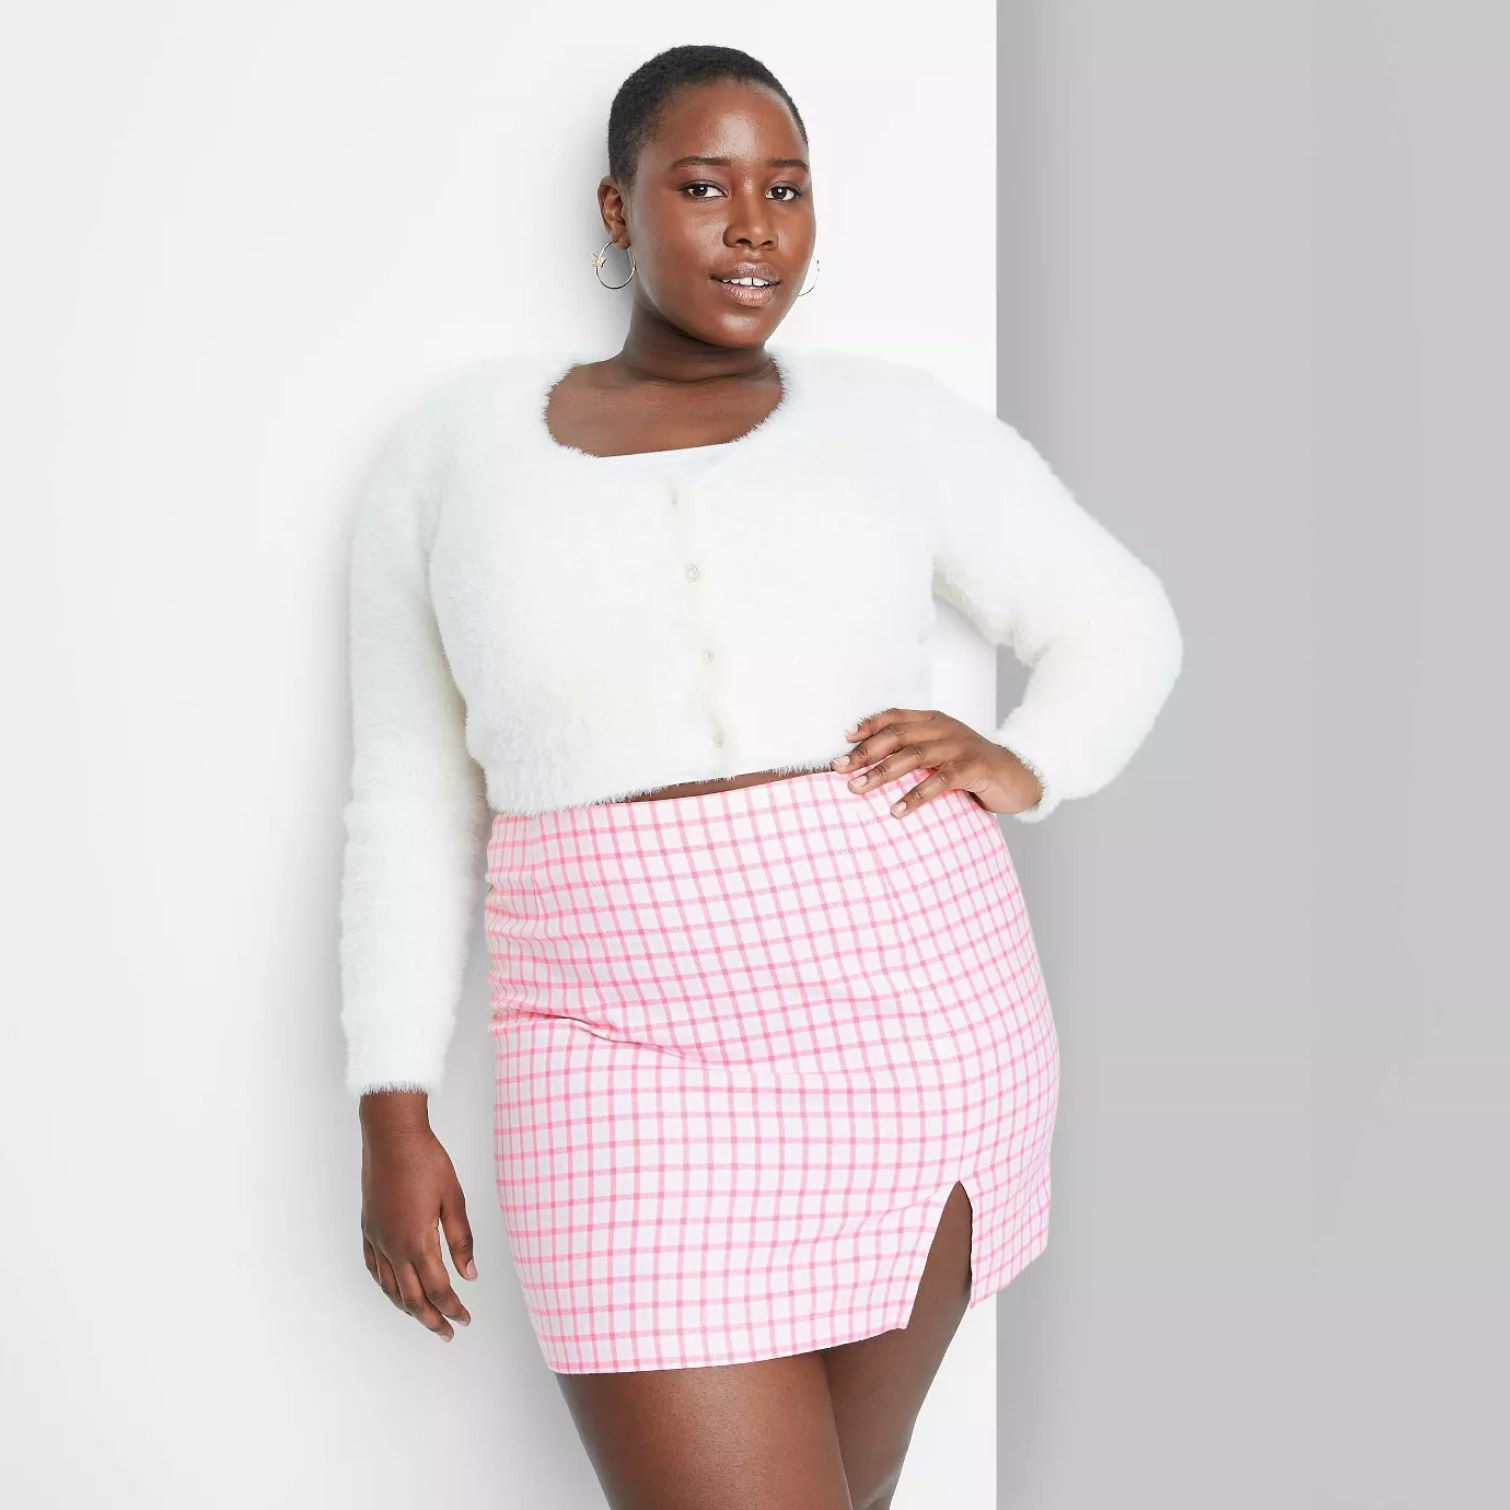 Plus-sized model wearing the skirt in pink